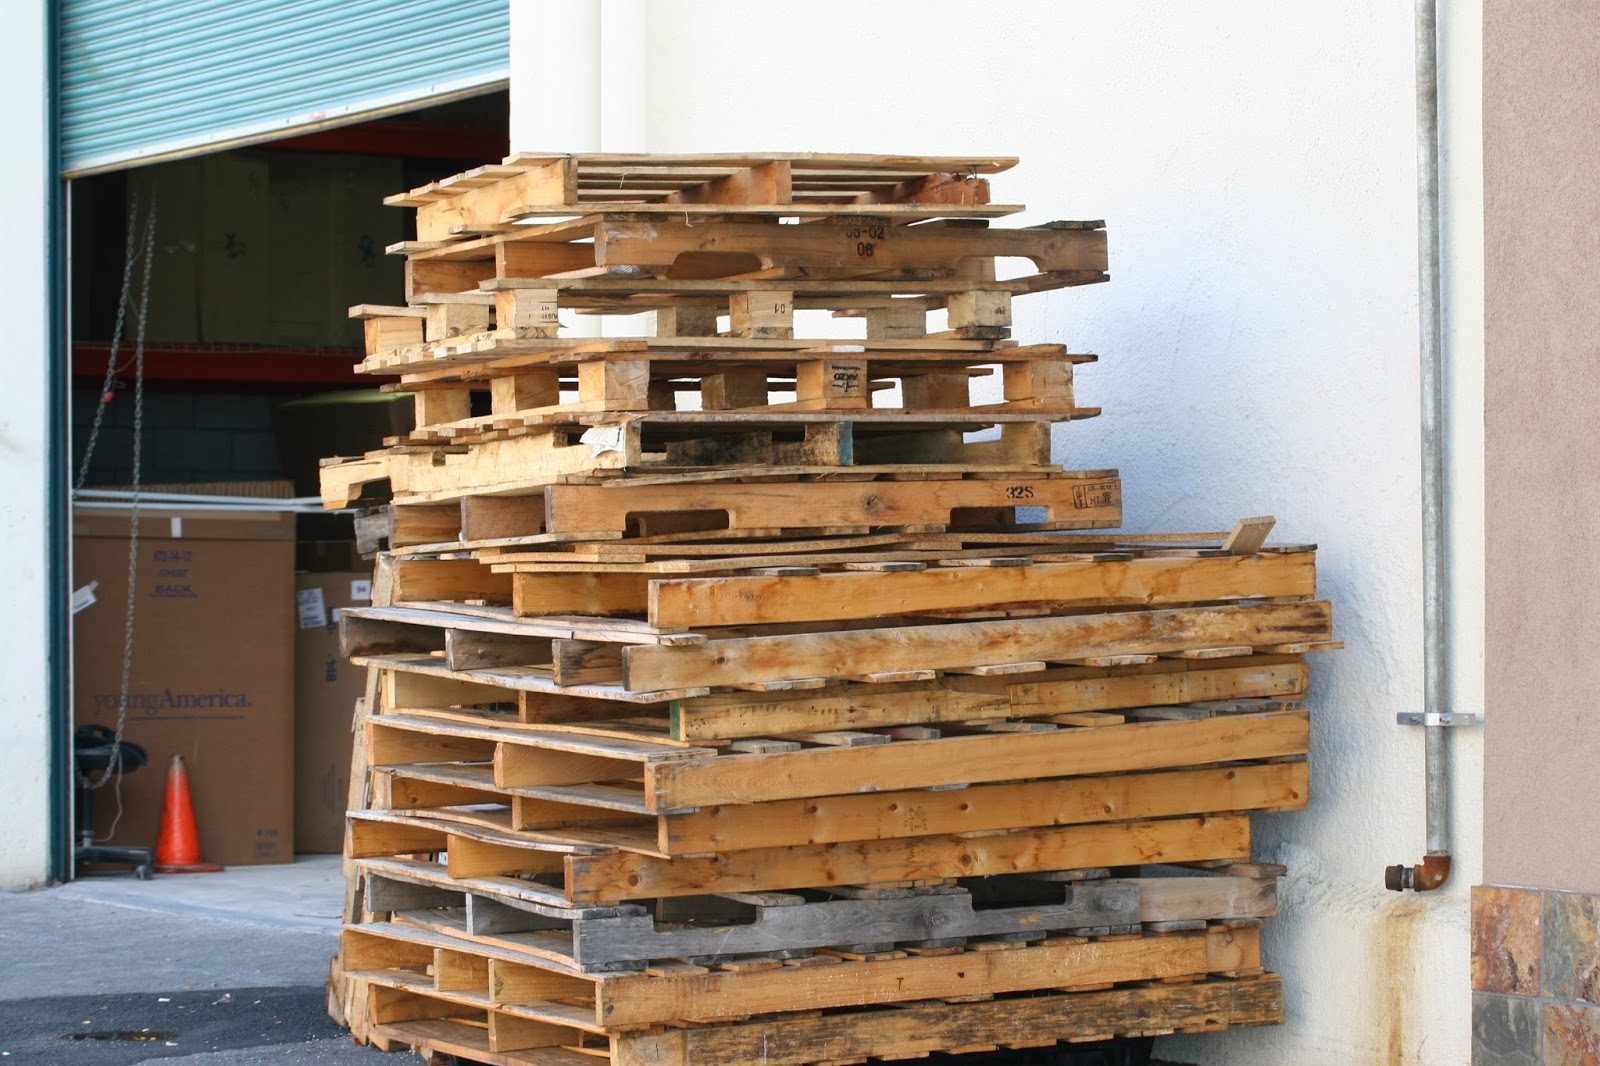 HOW TO START AND RUN A WOOD PALLET RECYCLING BUSINESS